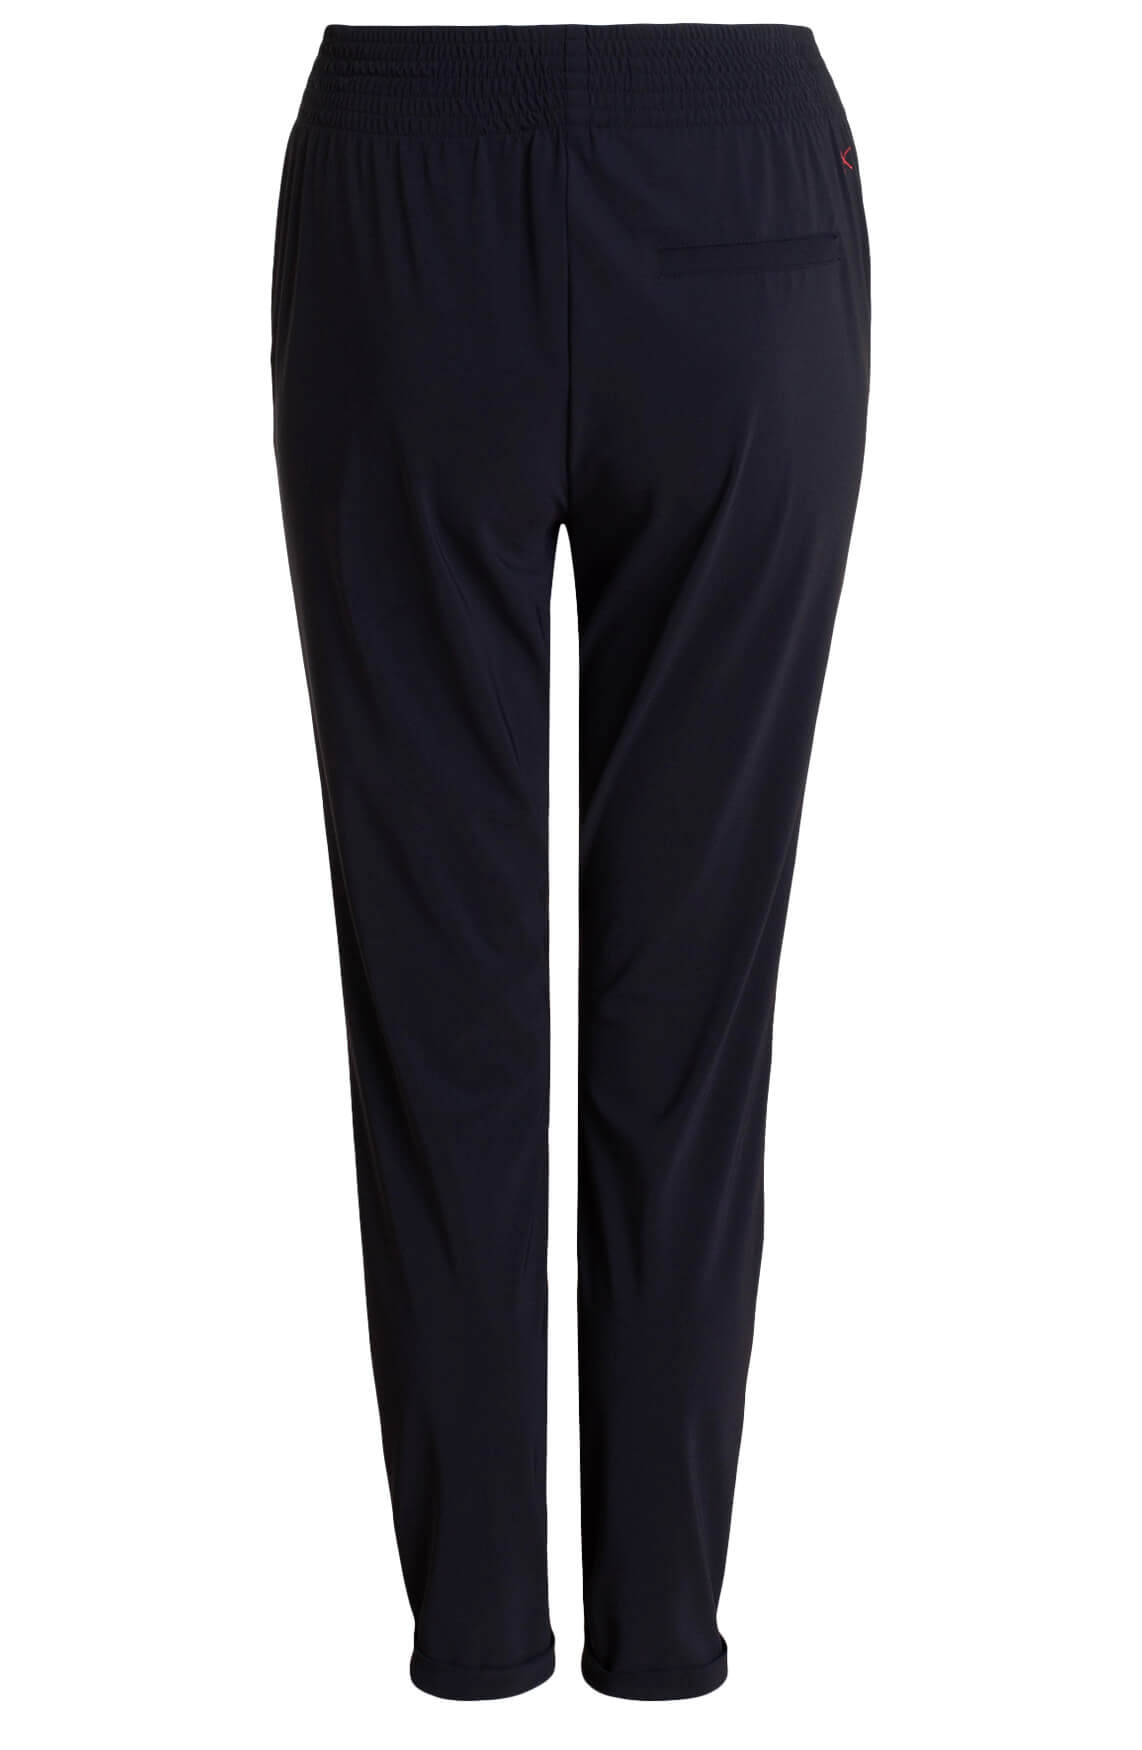 Anna Blue Dames Jersey sensitive broek zwart